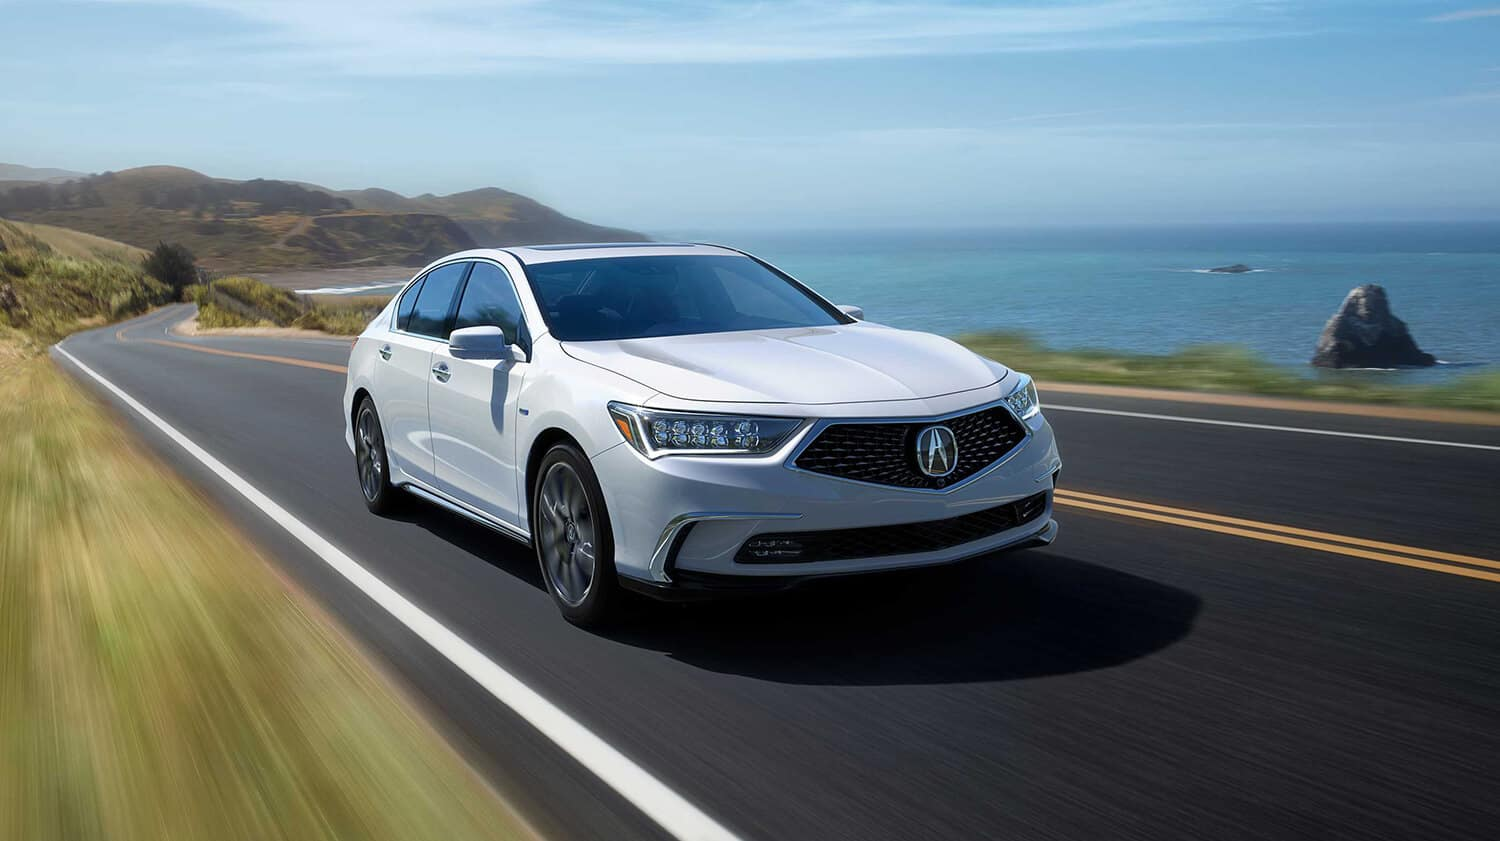 2020 Acura RLX Exterior Front Angle Passenger Side